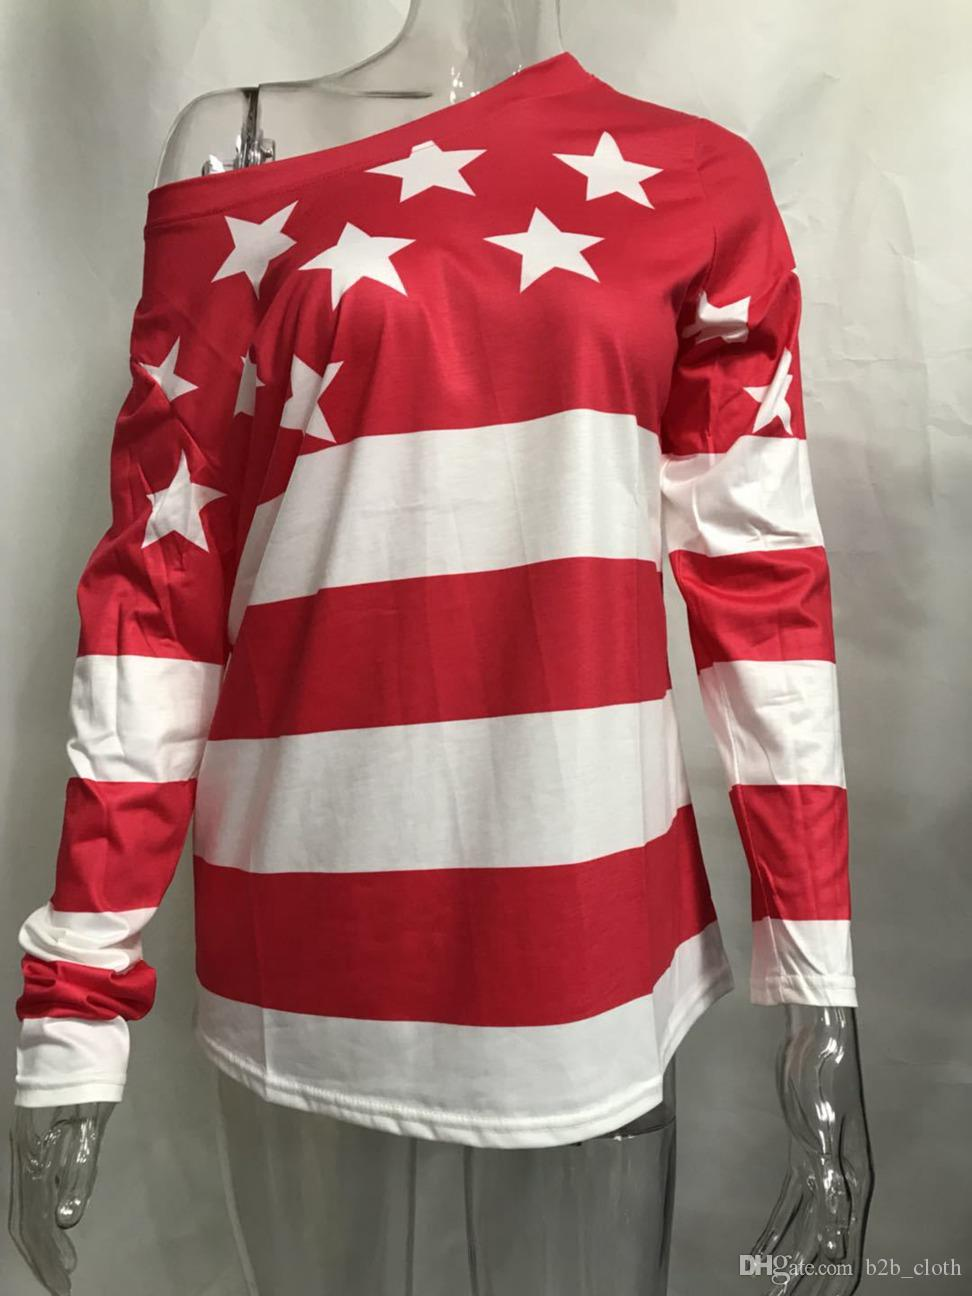 e75fe31acf8 Women Clothes Fashion Knitted O Neck Long Sleeve USA Flag T Shirt For Lady  Casual Tee Tops CNY483 Cheap T Shirt Design Your T Shirt From B2b_cloth, ...